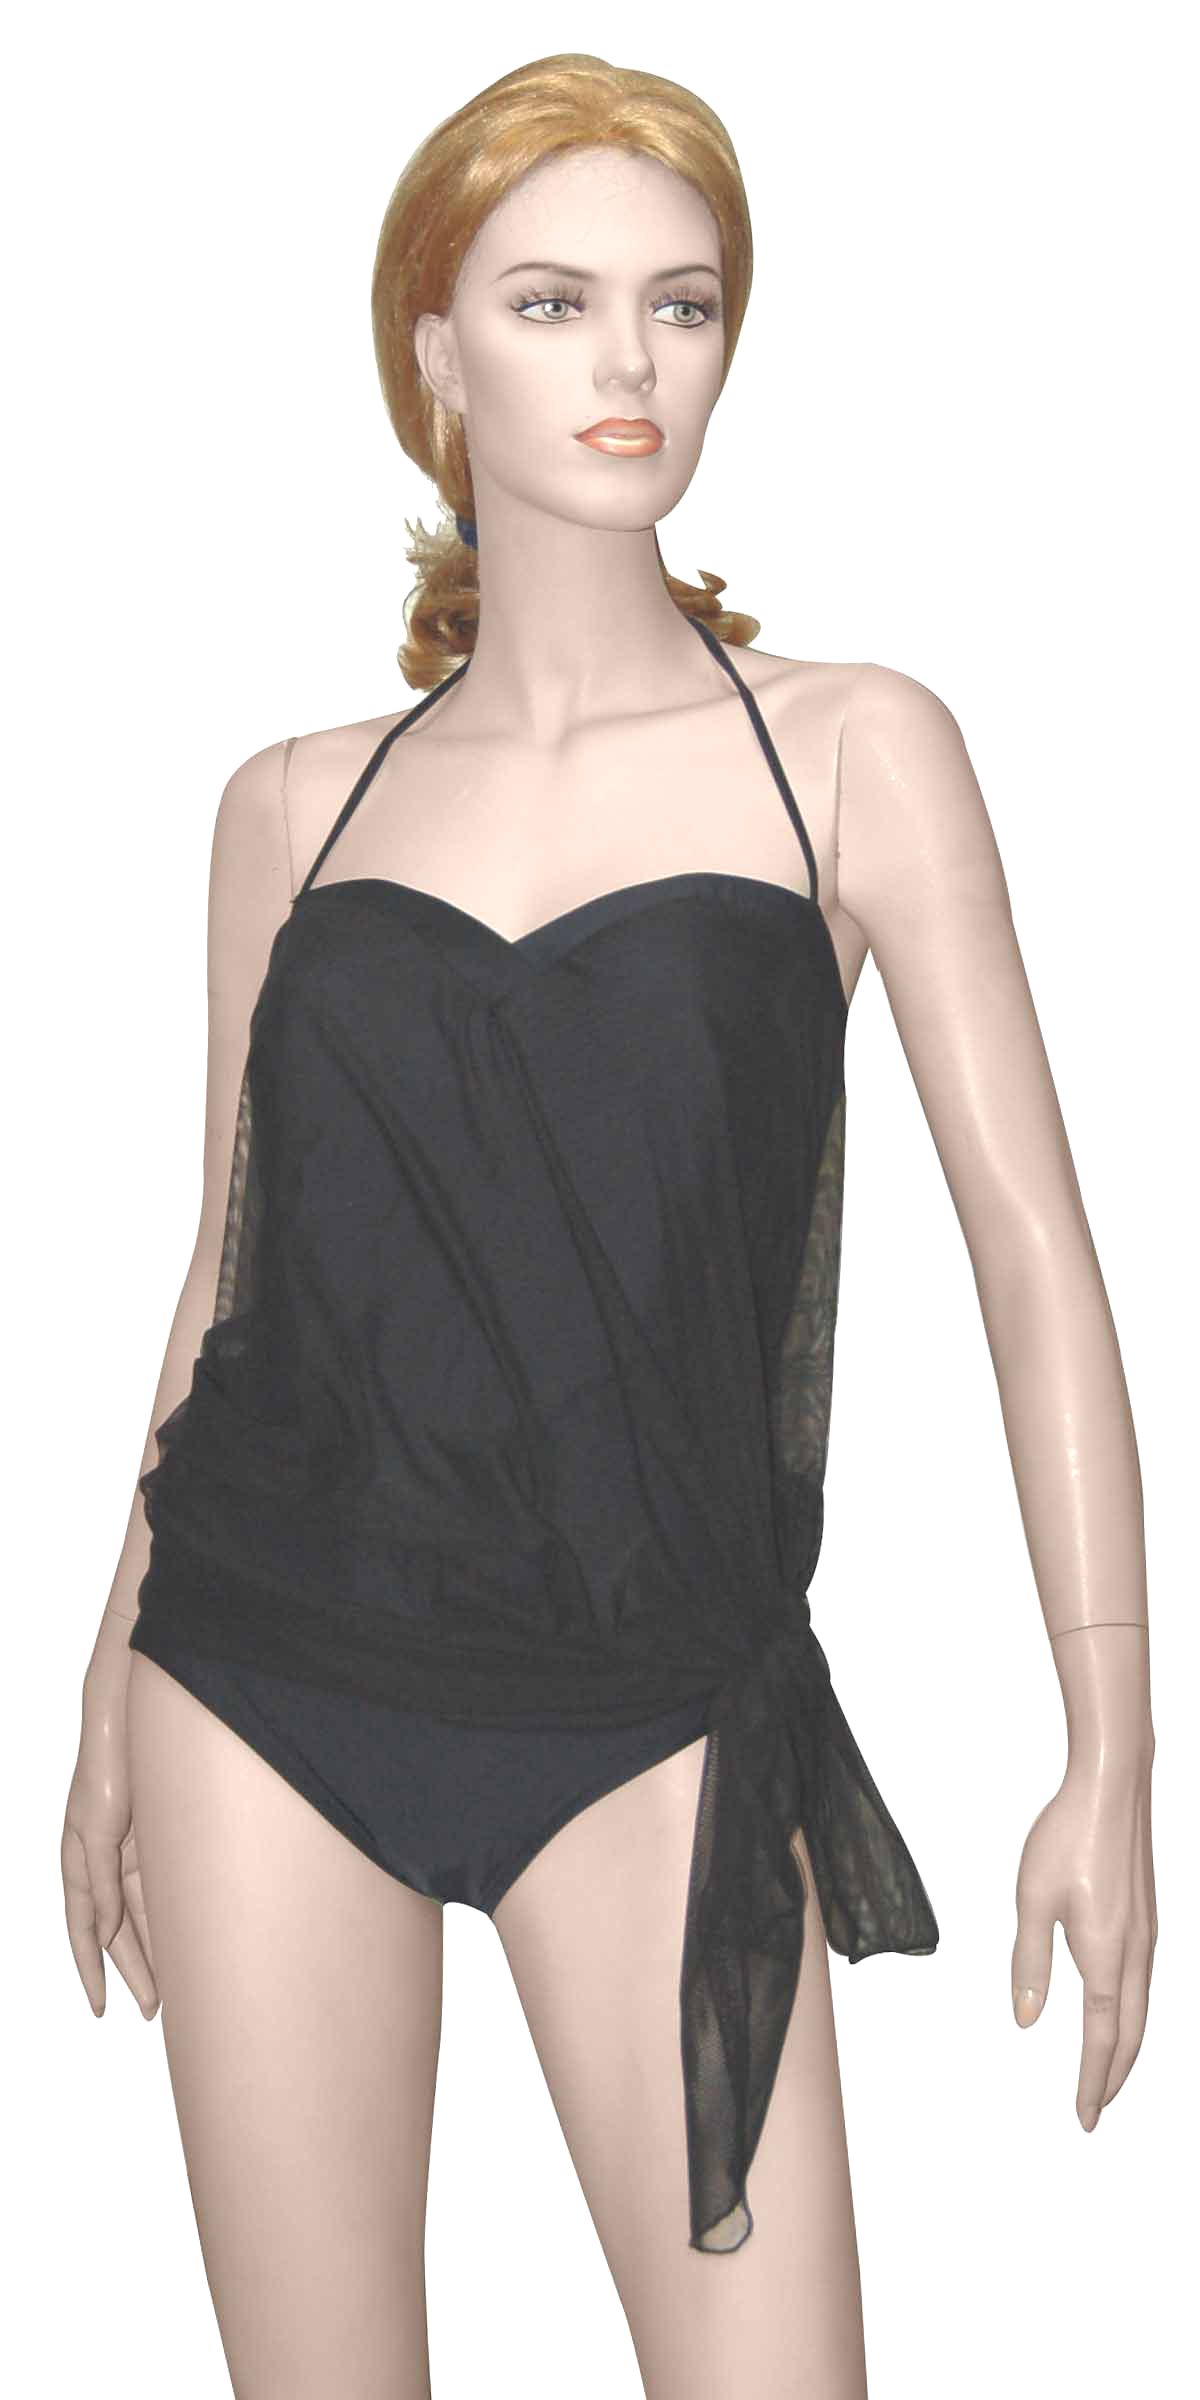 735ac9caf46 Slimsuit by Carol Wior: Black Bandeau With Attached Mesh Cover-up ...